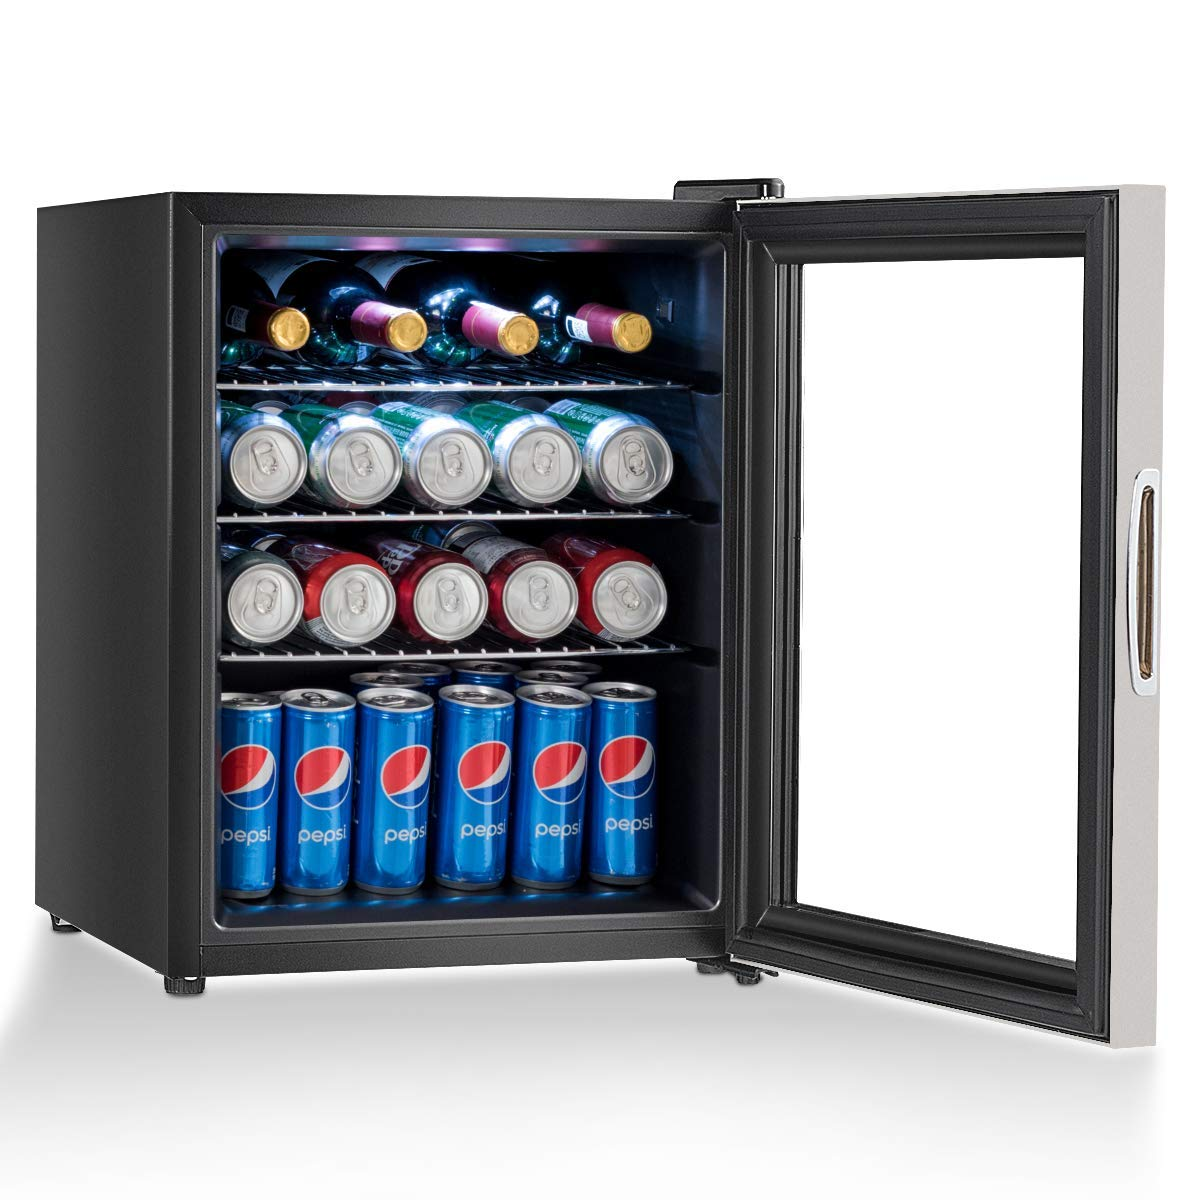 COSTWAY Beverage Refrigerator and Cooler